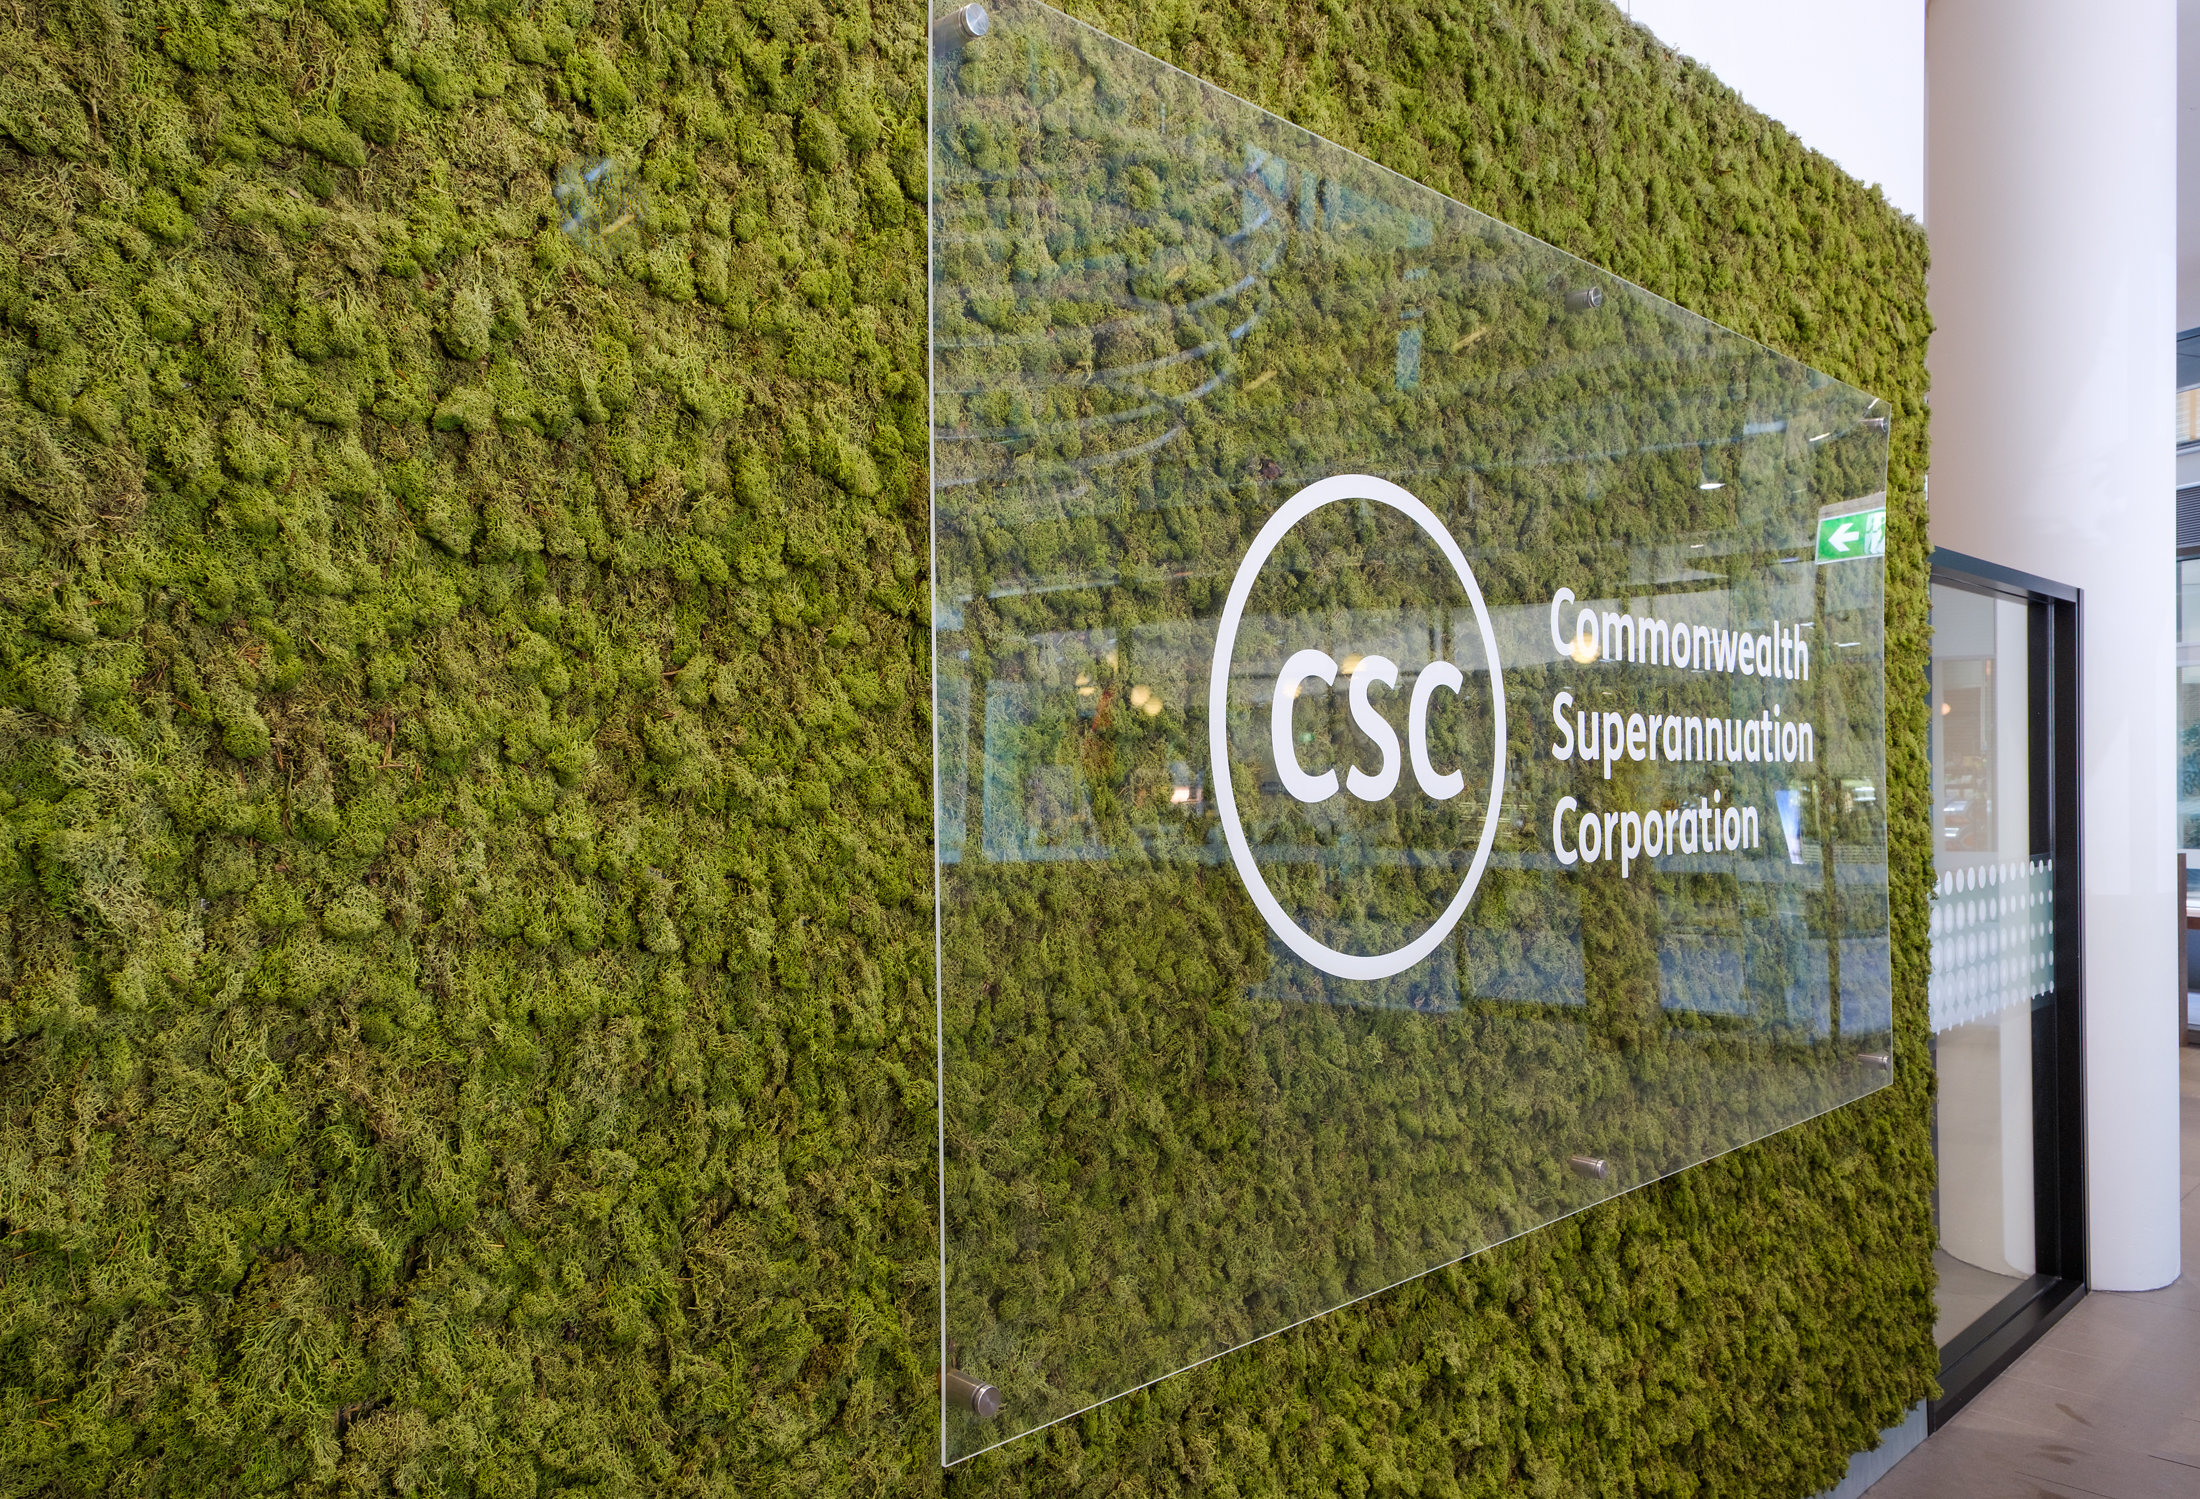 Commonwealth Superannuation Corporation, Canberra - Controlling sound, reducing air pollution, and regulating building temperature are all benefits of incorporating nature in a space - Biophilic design not only makes people happy, it also makes our bank accounts happy by reducing energy costs.